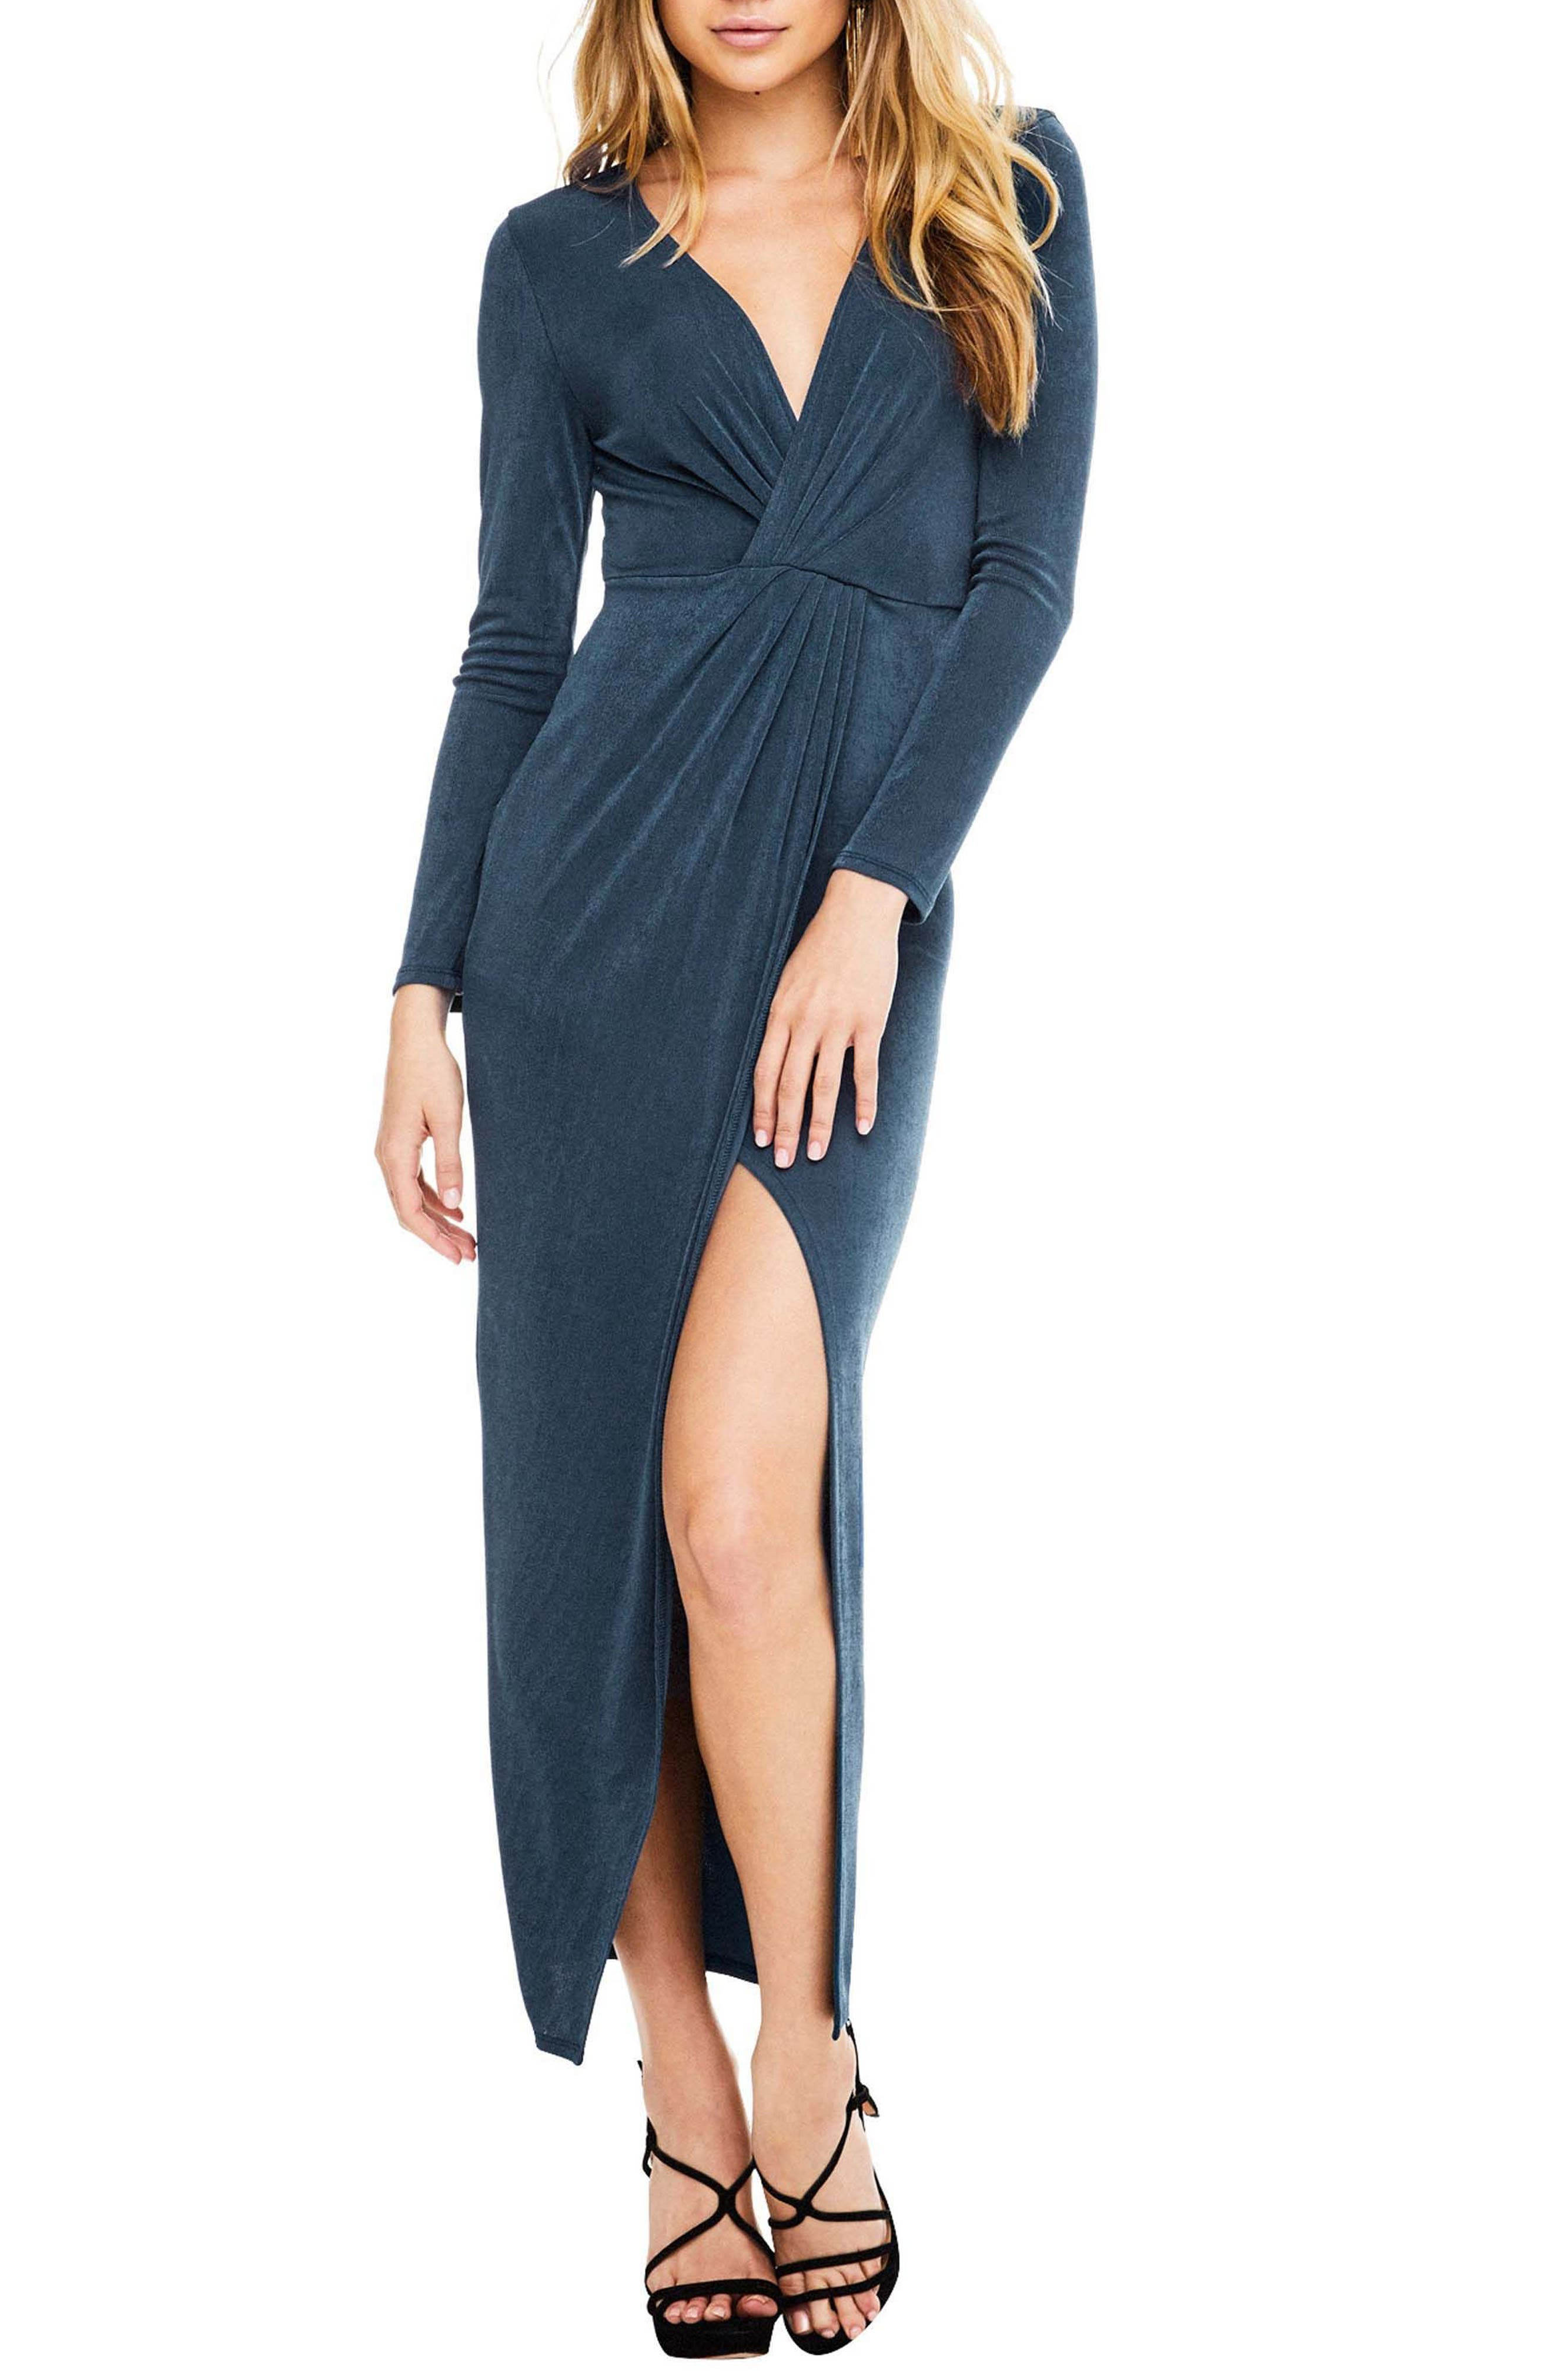 Main Image - ASTR the Label Valerie Faux Wrap Dress